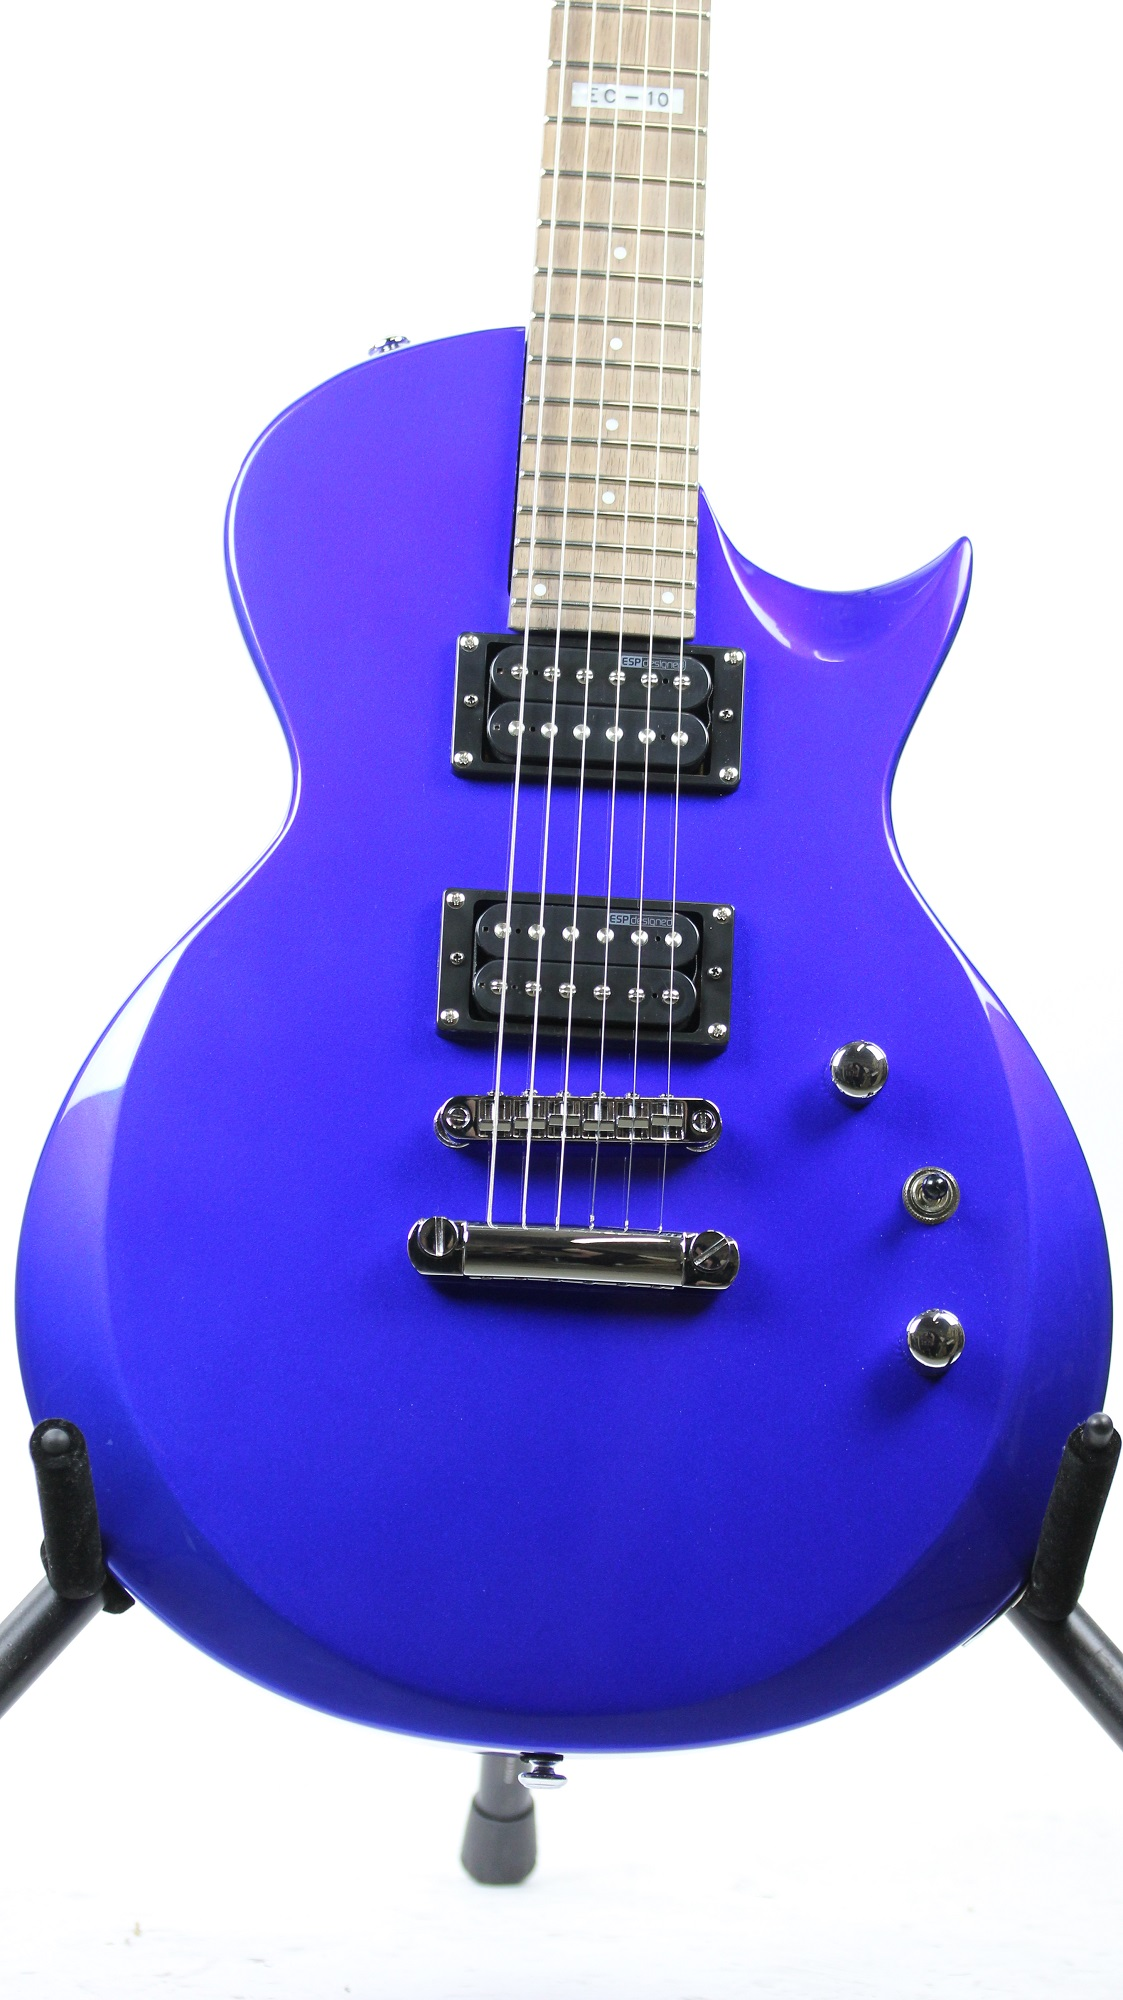 esp ltd ec 10 electric blue sample prototype electric guitar 6. Black Bedroom Furniture Sets. Home Design Ideas